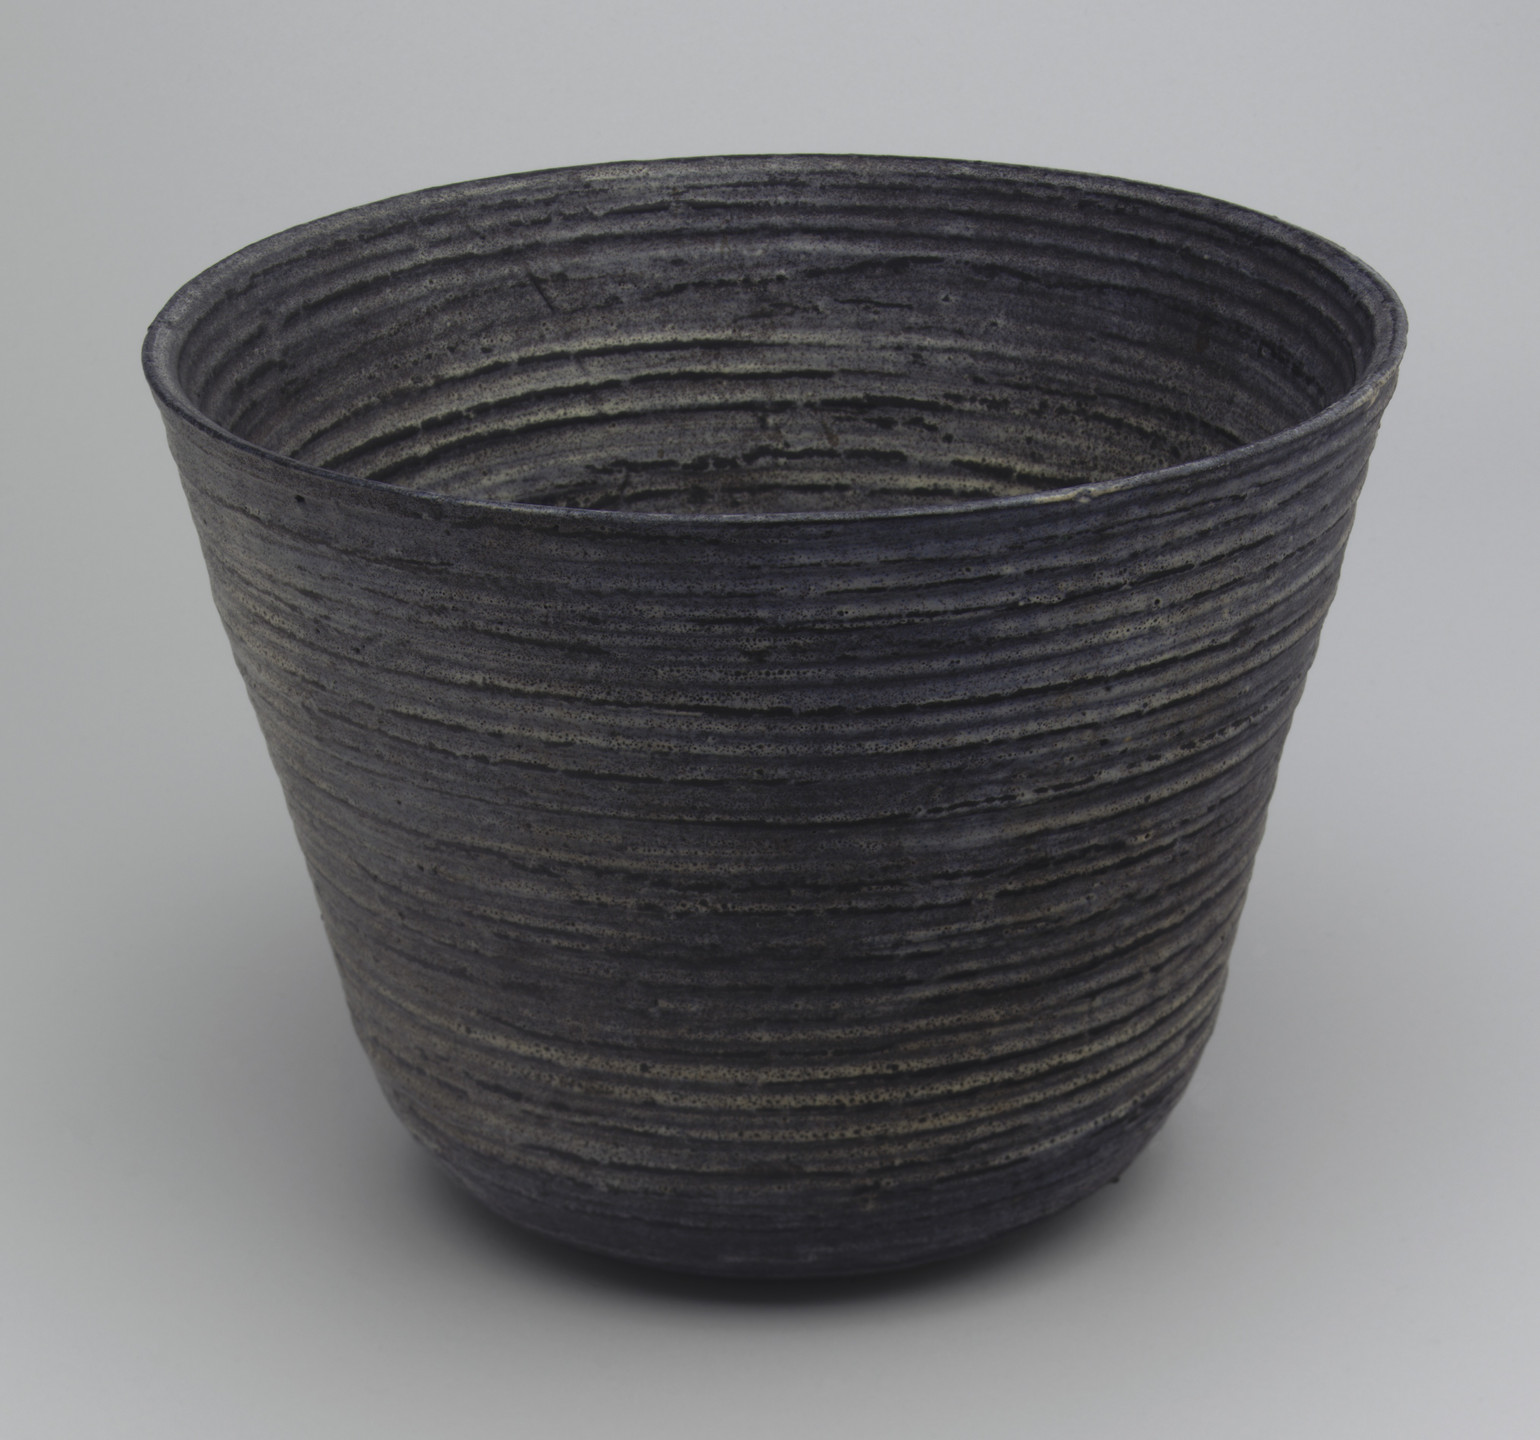 Laura Andreson. Bowl. 1943